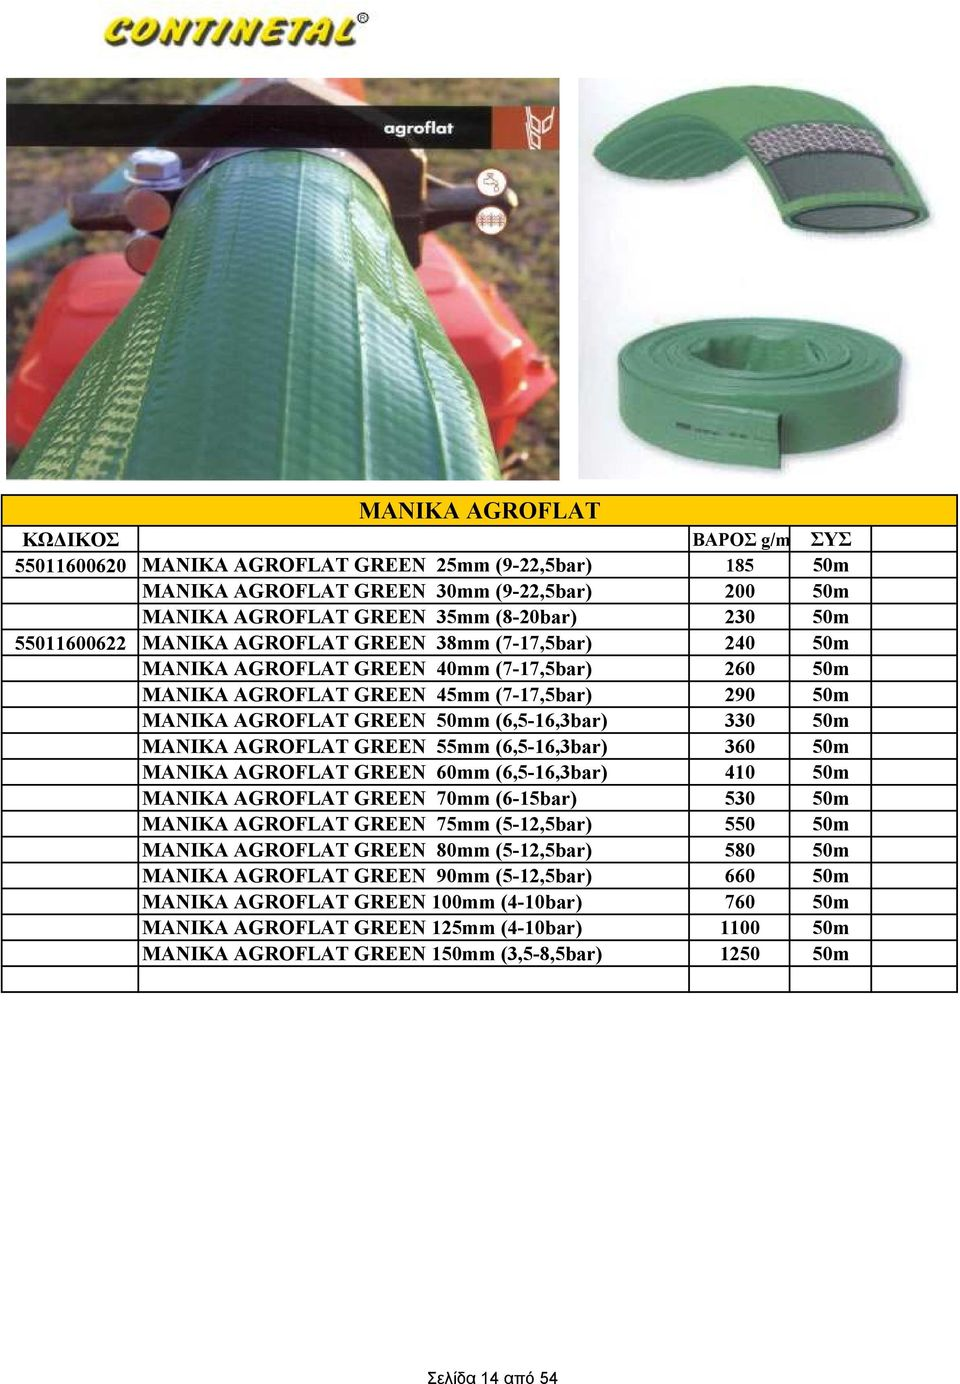 GREEN 55mm (6,5-16,3bar) 360 50m ΜΑΝΙΚΑ AGROFLAT GREEN 60mm (6,5-16,3bar) 410 50m ΜΑΝΙΚΑ AGROFLAT GREEN 70mm (6-15bar) 530 50m ΜΑΝΙΚΑ AGROFLAT GREEN 75mm (5-12,5bar) 550 50m ΜΑΝΙΚΑ AGROFLAT GREEN